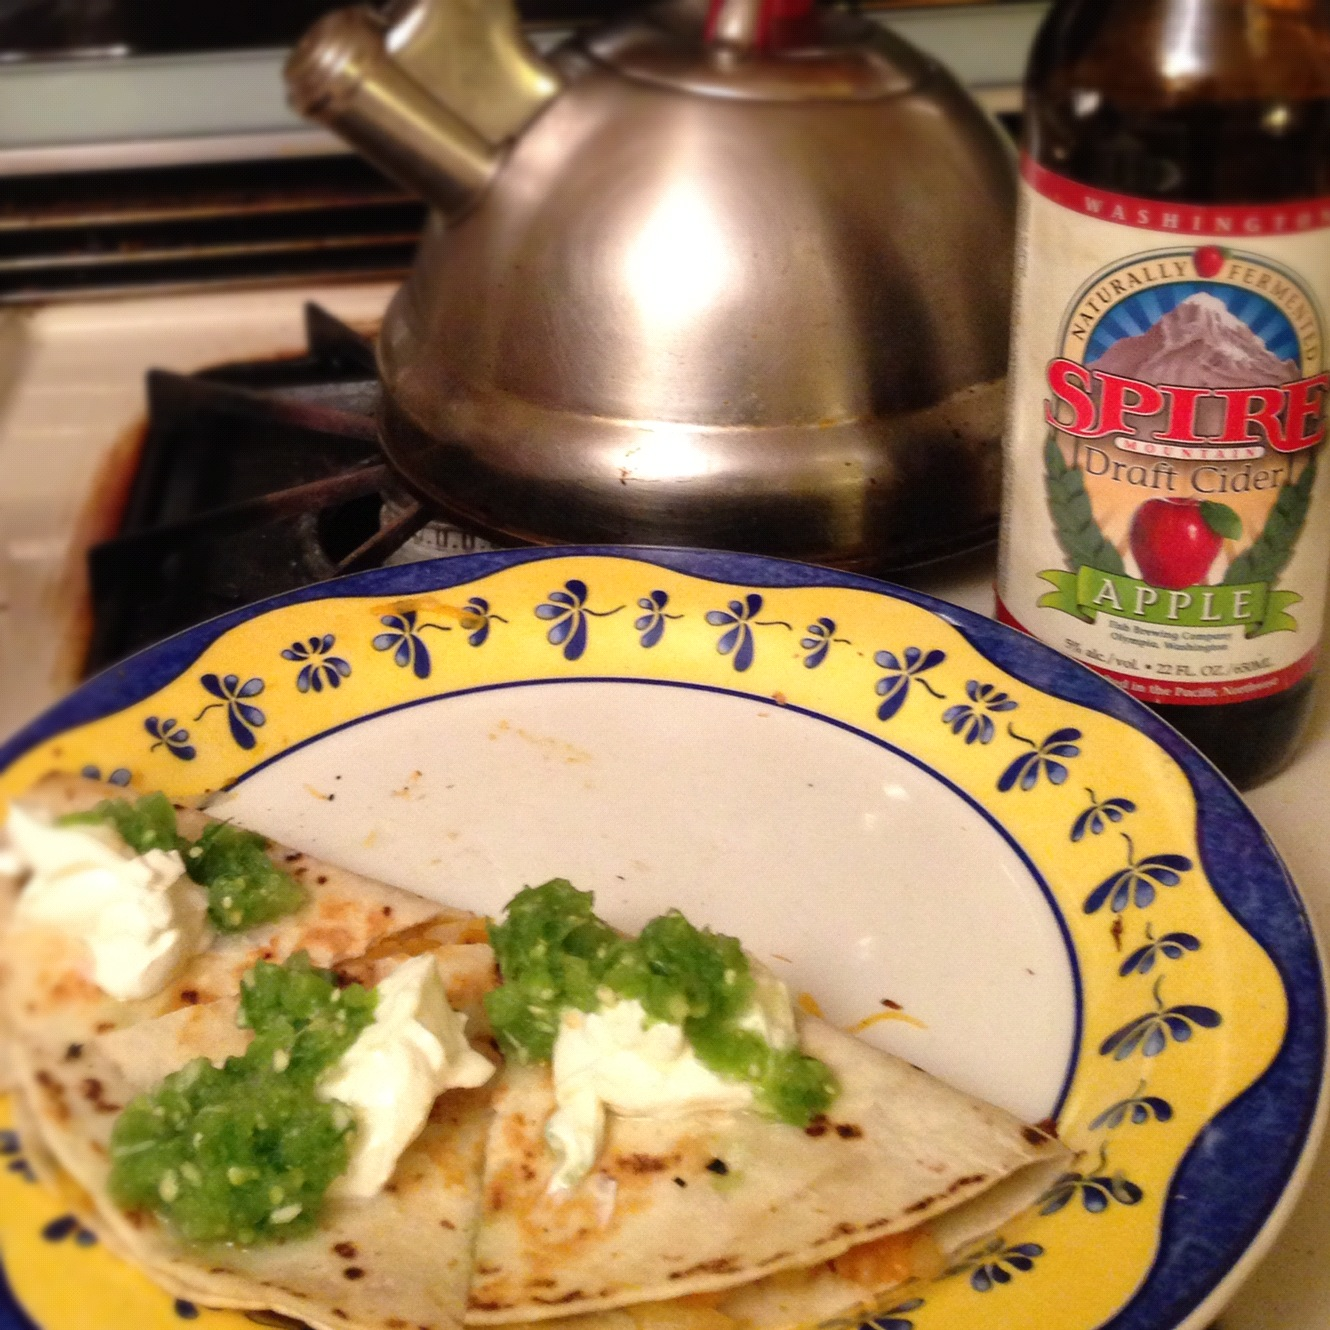 Wandering Voyager: Butternut Squash Quesadillas with Tomatillo Salsa